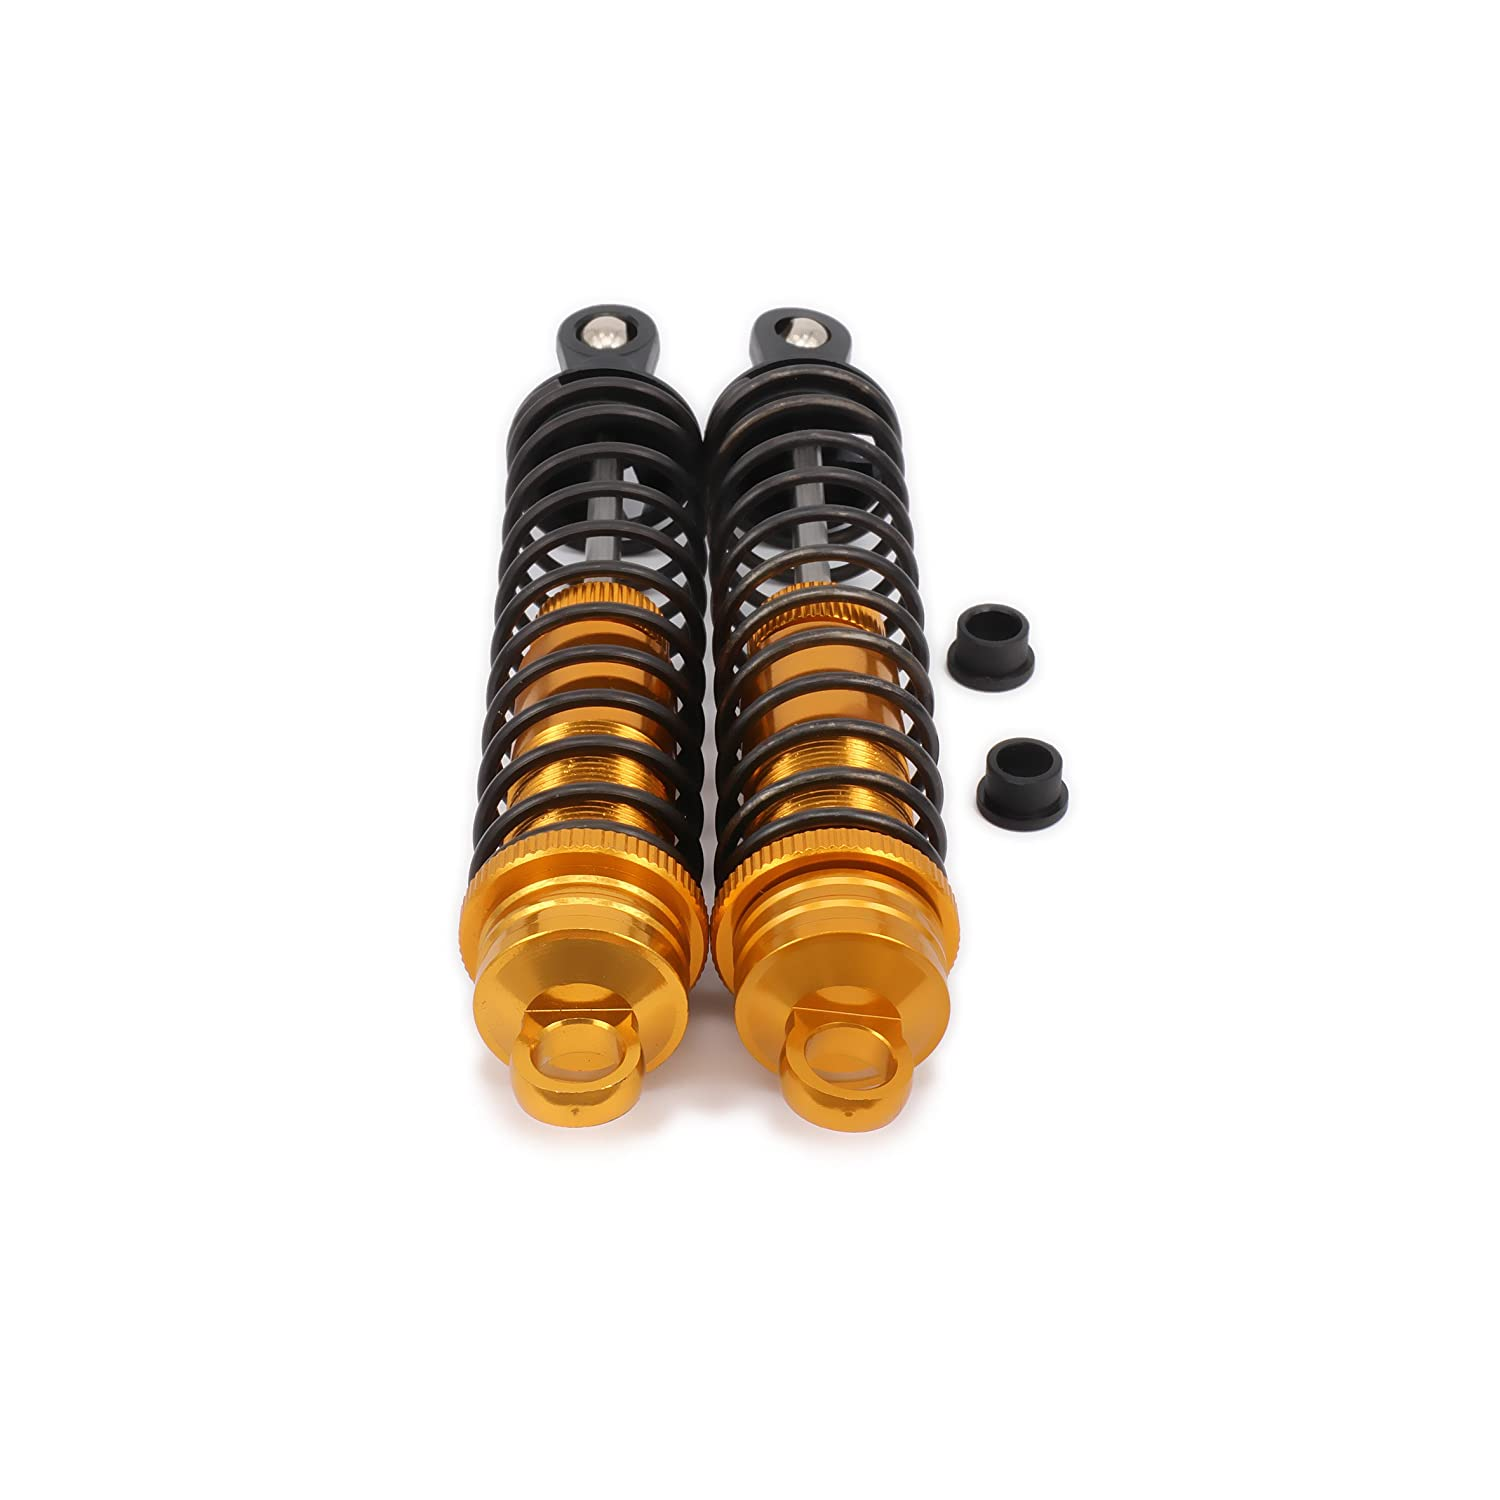 RCAWD Shock Absorber Damper 81003 122mm Oil Adjustable Aluminum for Rc 1//8 Buggy Crawler Car Upgraded Hop-Up Parts HPI HSP Traxxas Losi Axial Tamiya Himoto 2Pcs Titanium